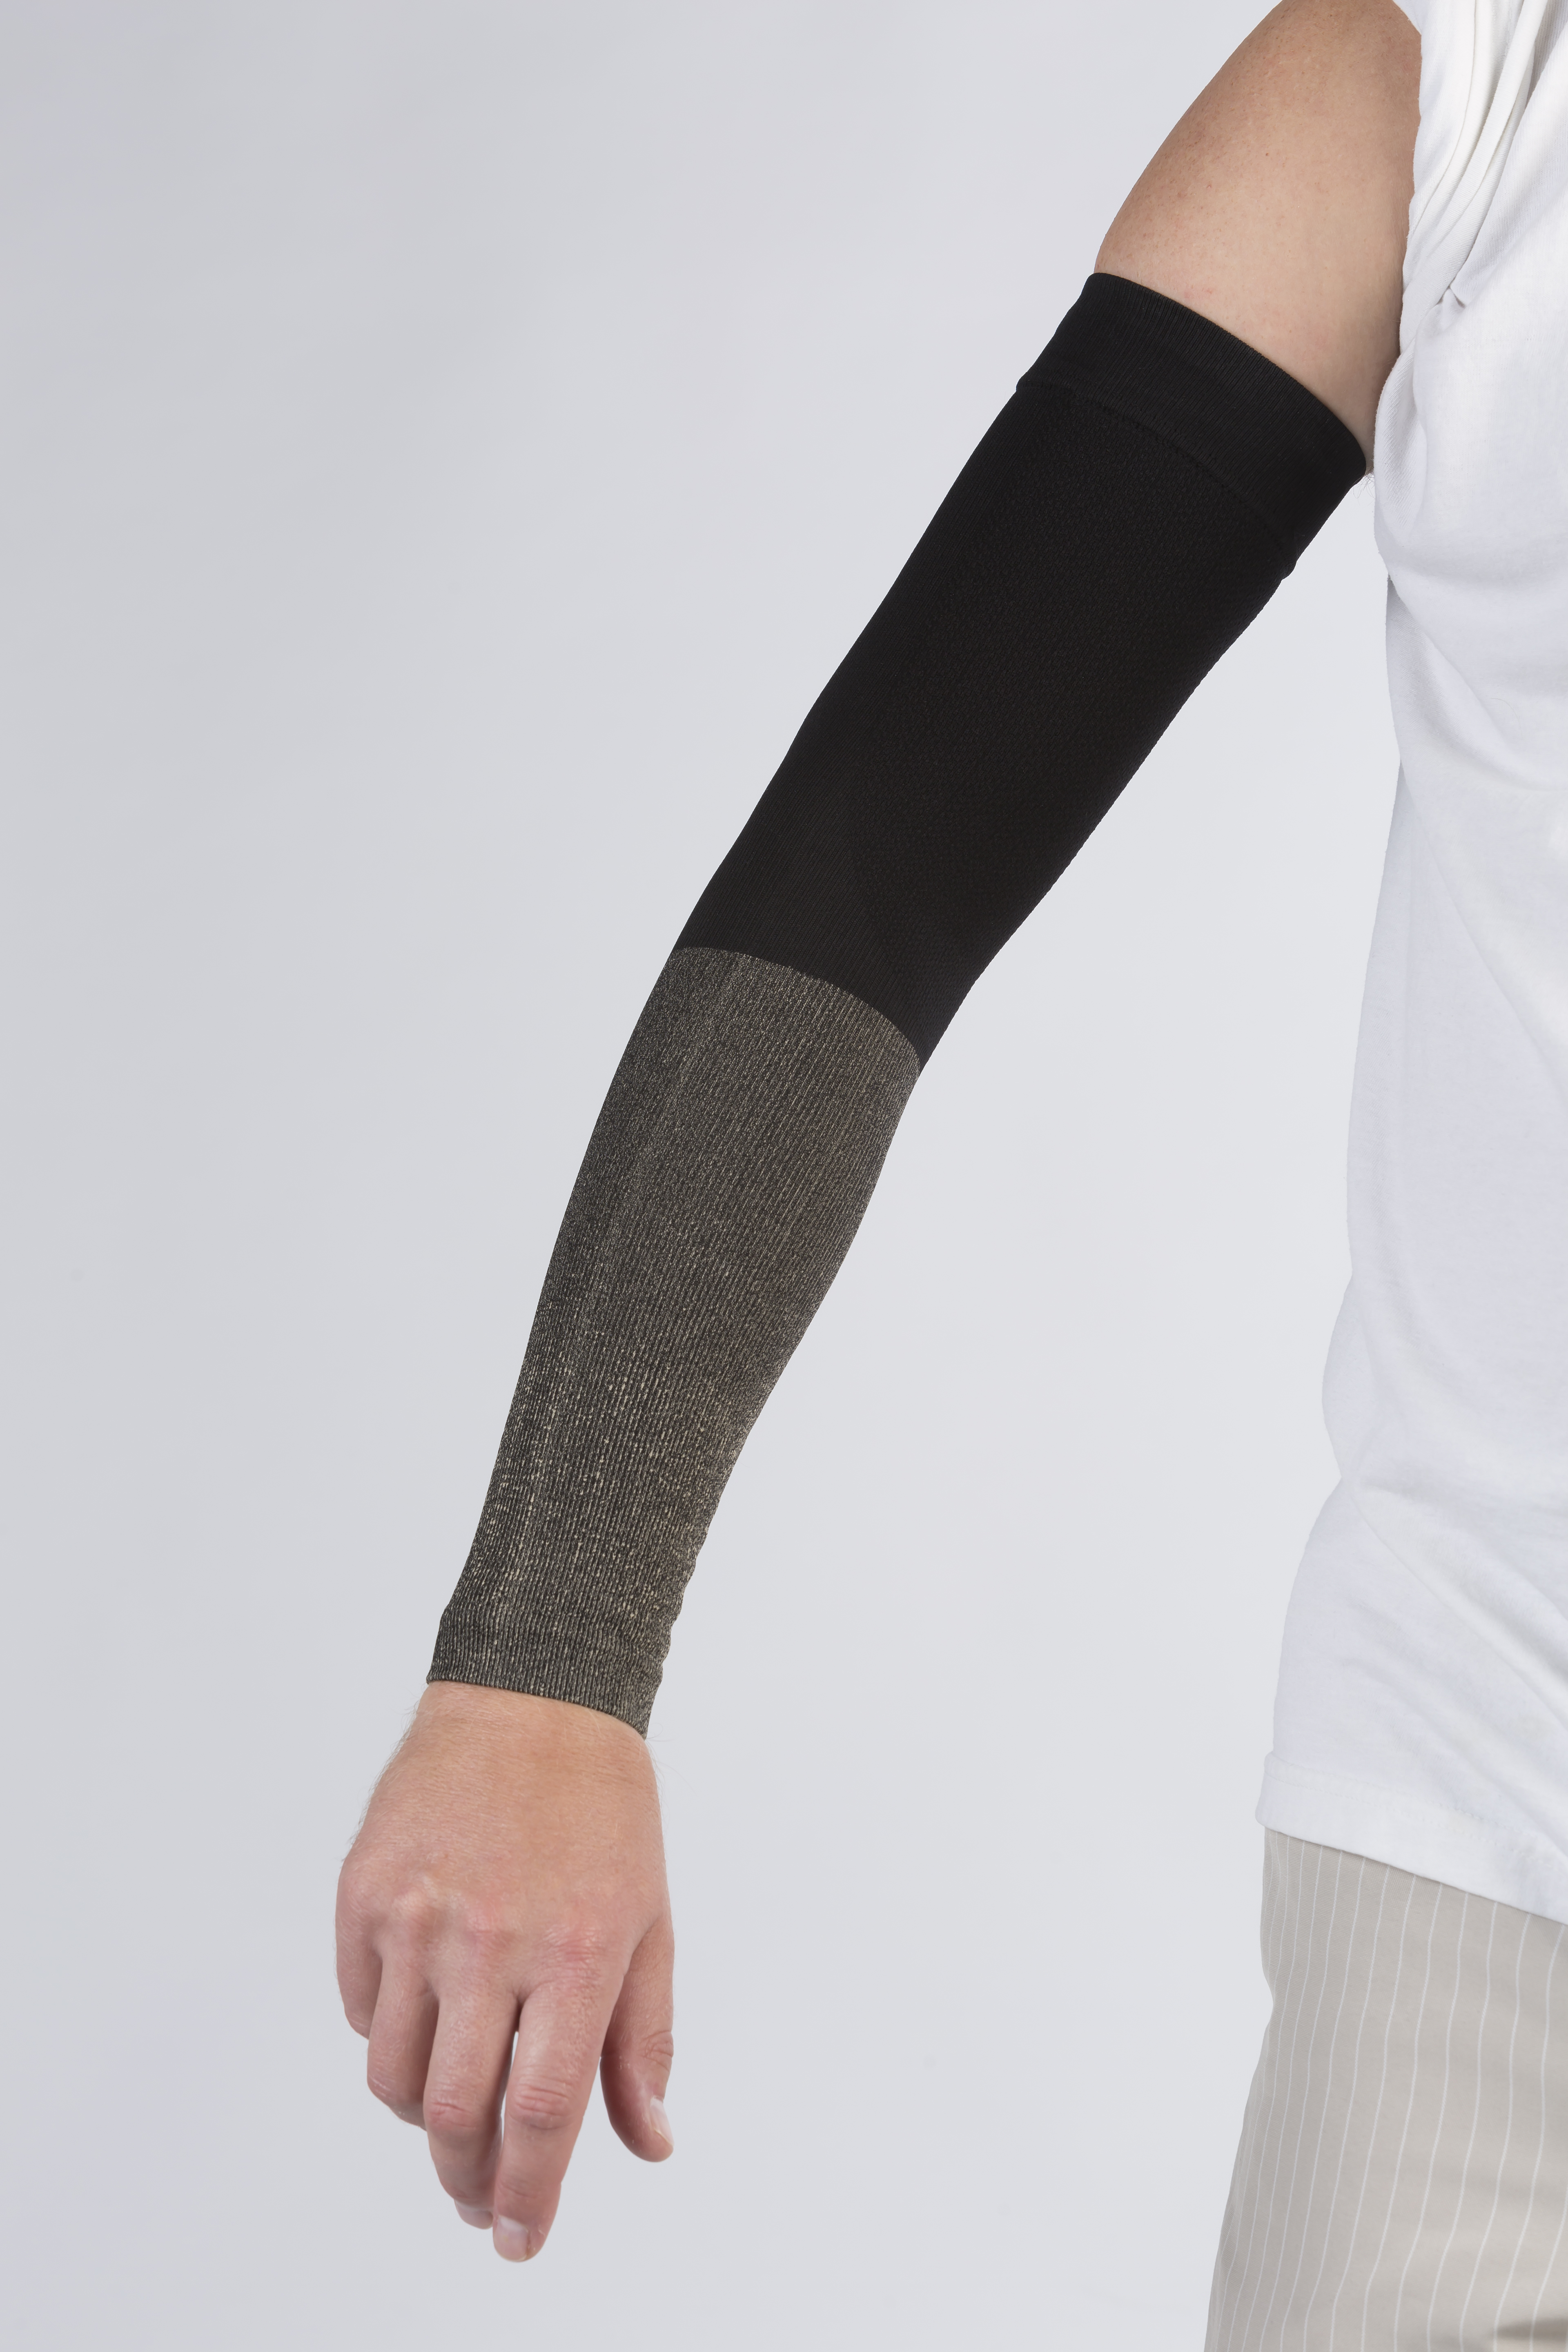 OST Power Sleeve Full Arm | On Site Therapy Tallahassee